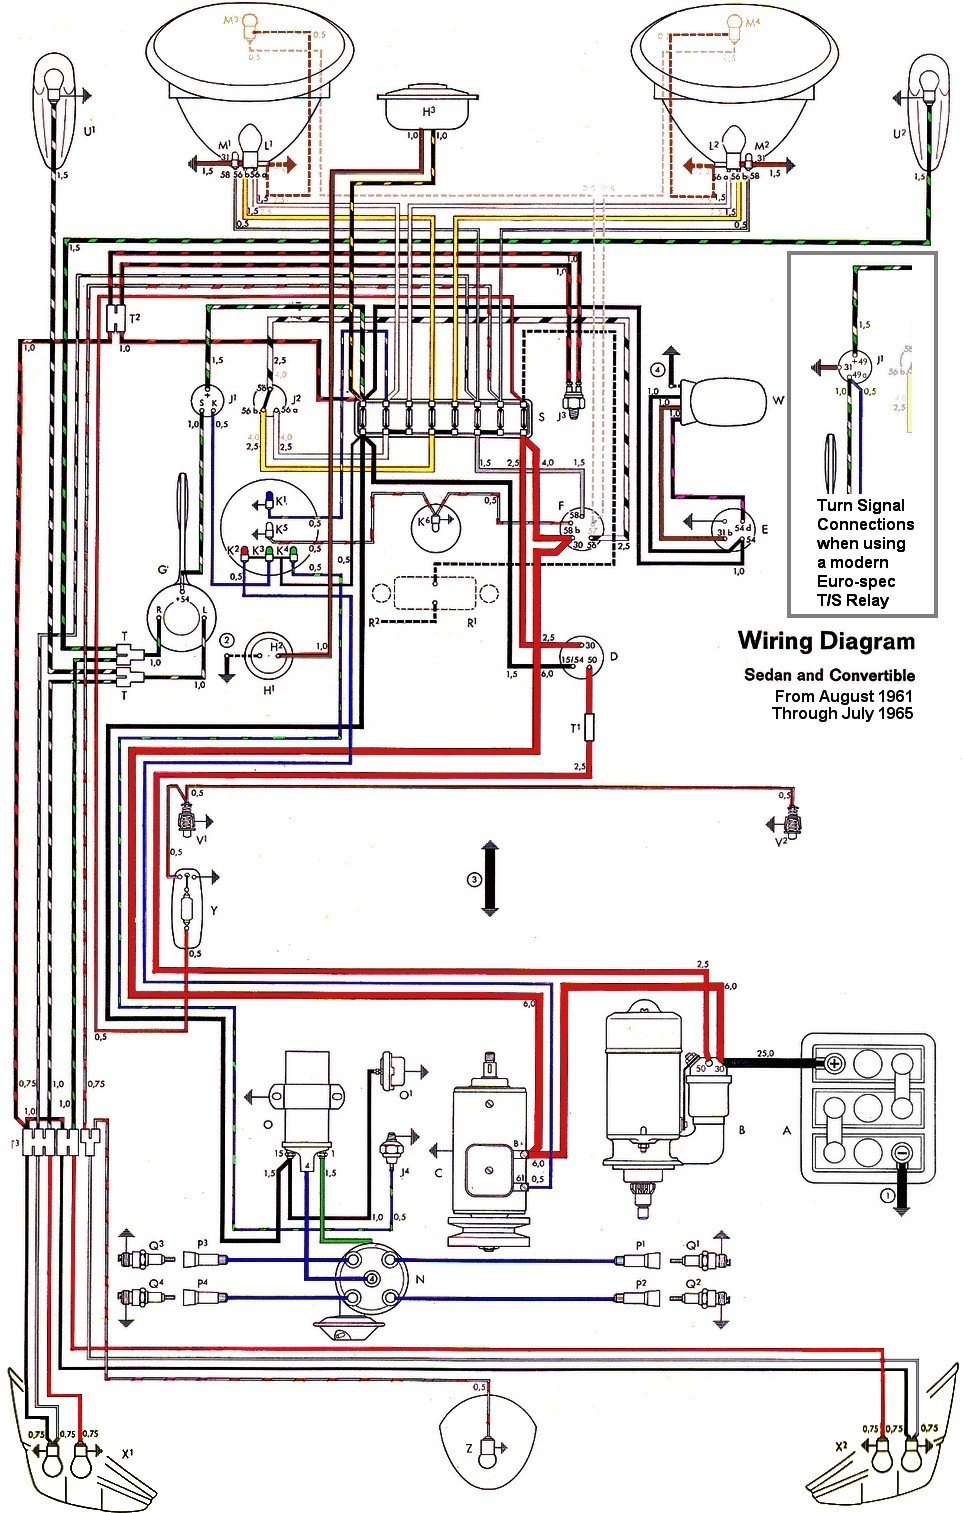 1970 Bug Wiring Diagram Schematic Name Residential Electrical Panel Diagrams Thesamba Com Type 1